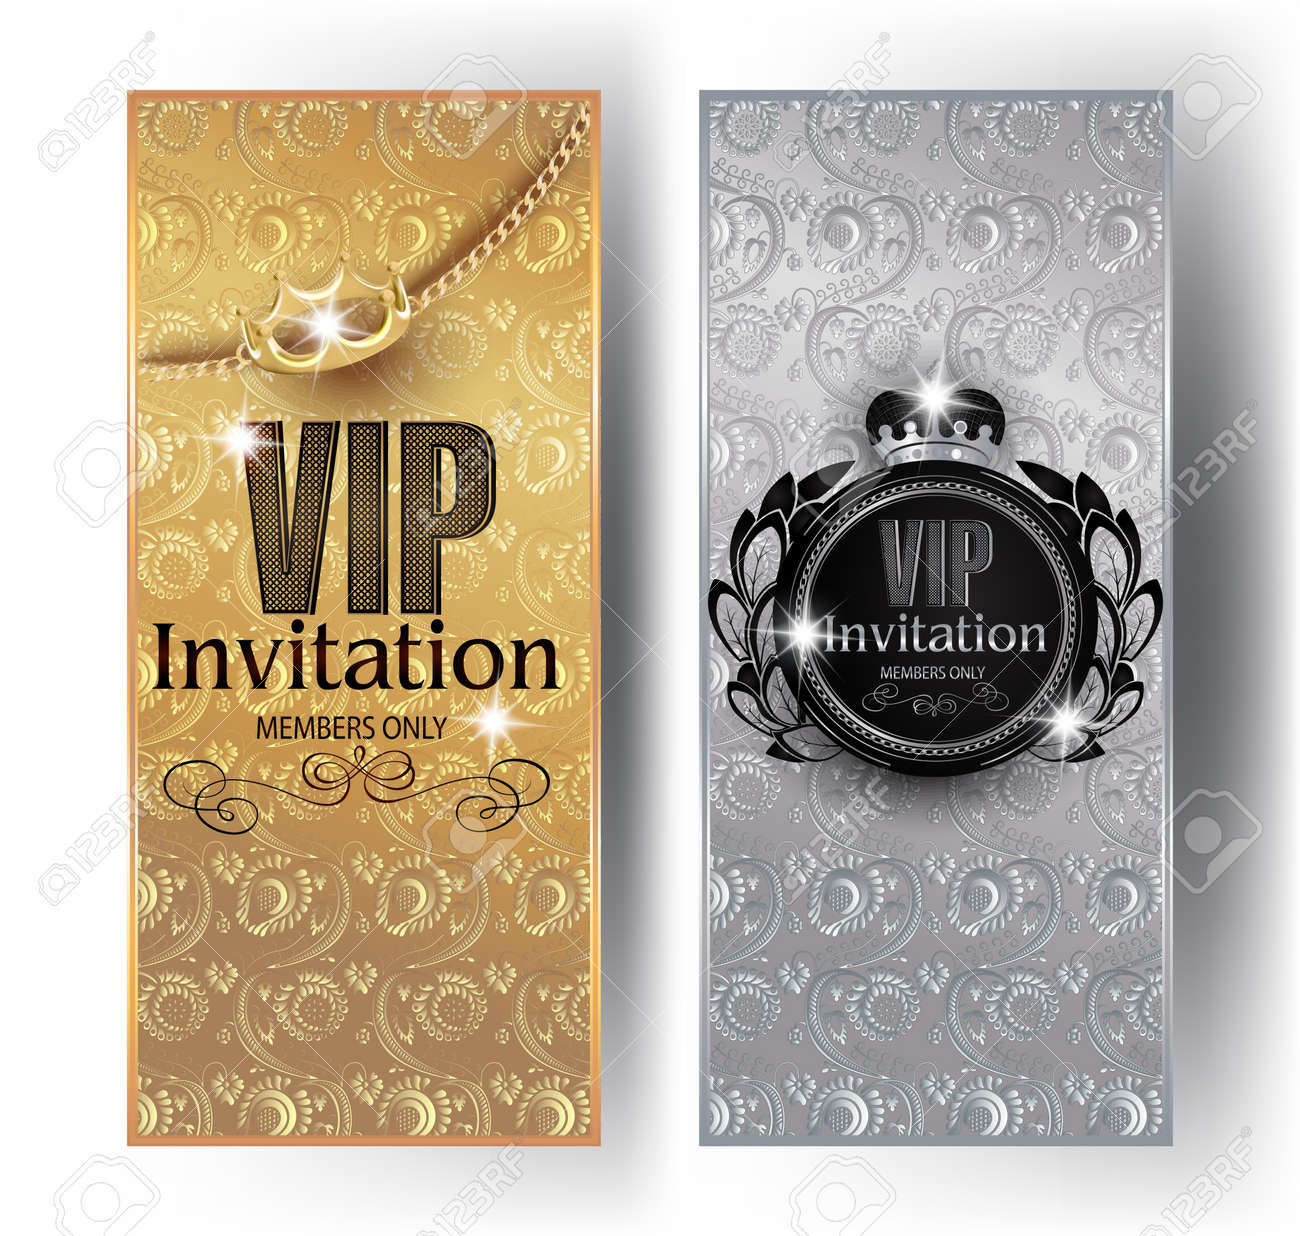 Gold and silver vip invitation cards with floral design background gold and silver vip invitation cards with floral design background crowns and vintage frames stopboris Gallery